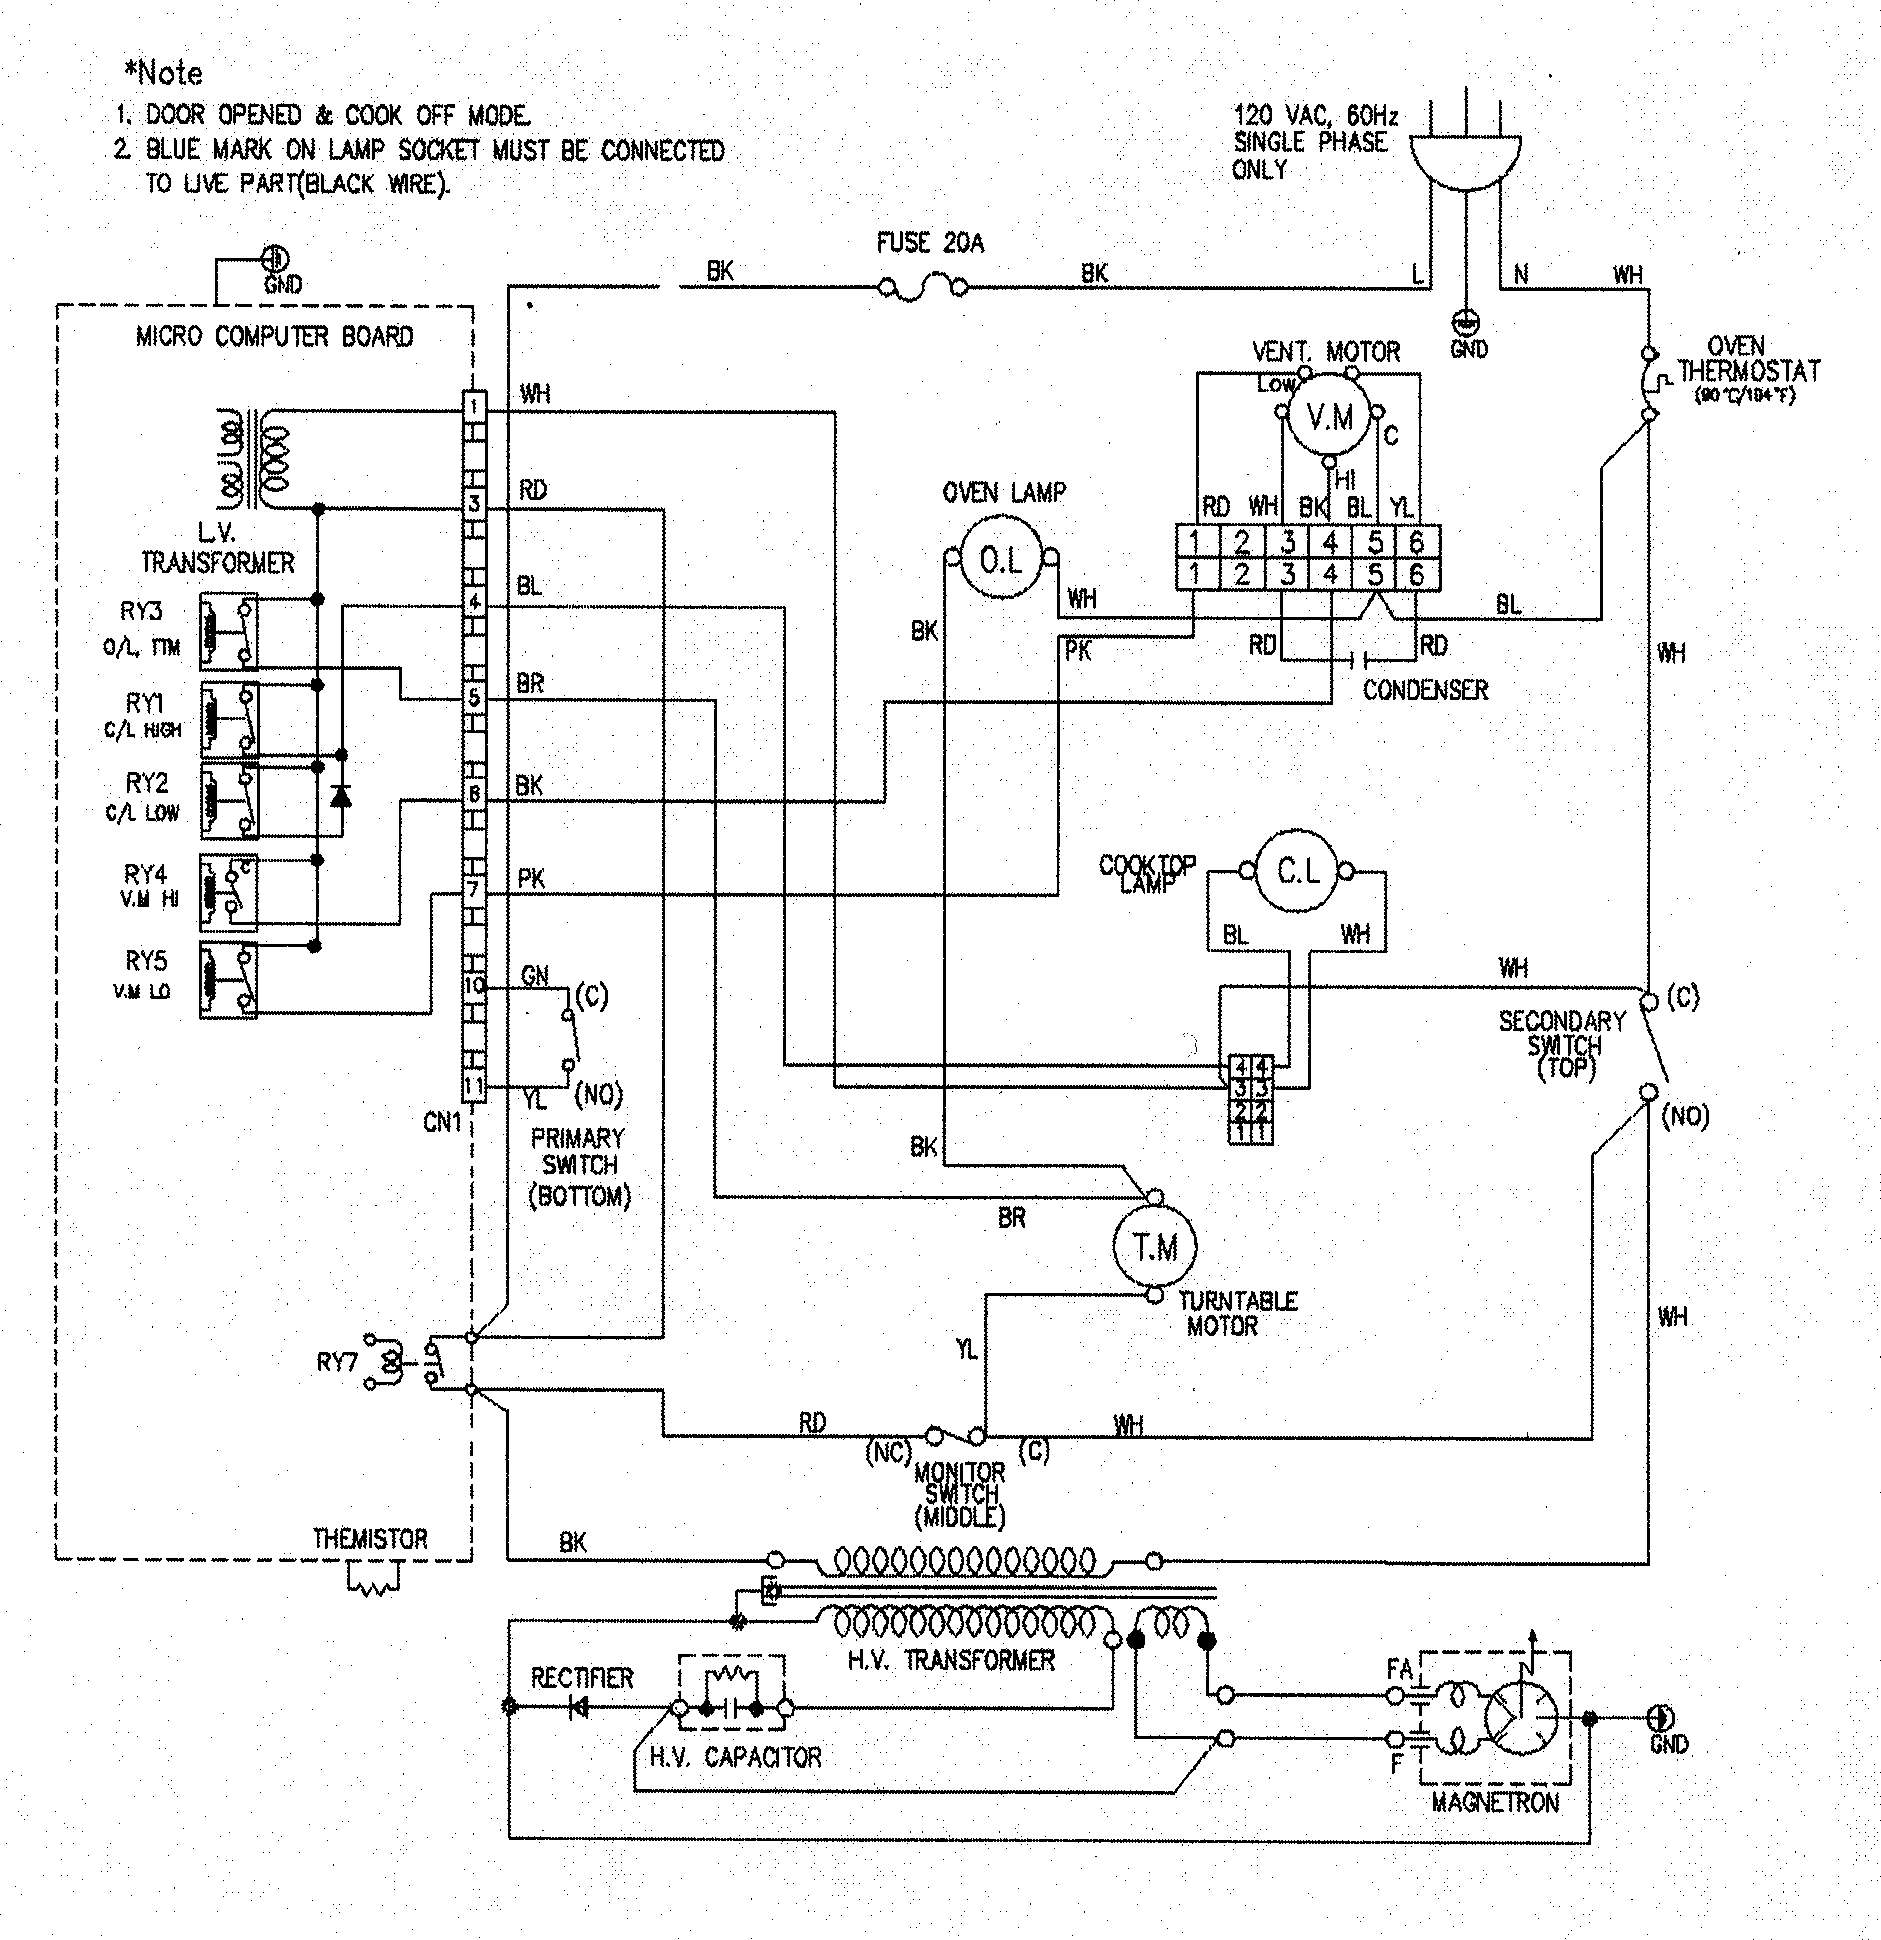 [DIAGRAM_38YU]  WIRING DIAGRAM OF A MICROWAVE OVEN | Thermostat wiring, Electric oven and  hob, Electric oven | Wire Stove Schematic Diagram |  | Pinterest